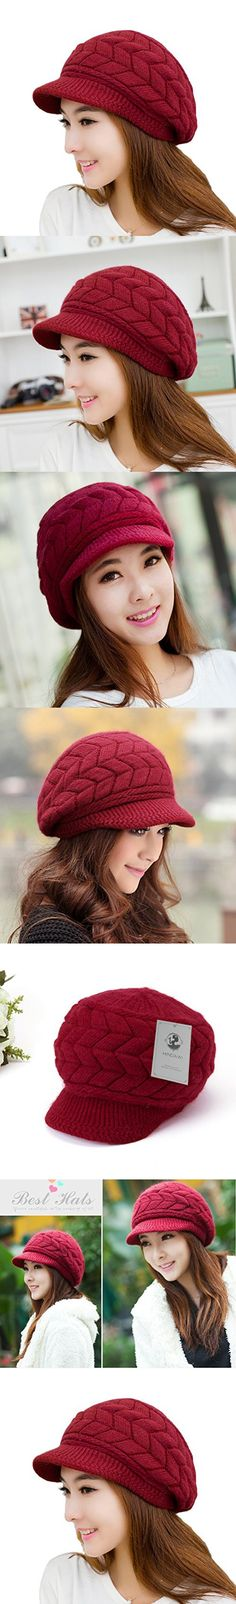 238 Best Women Winter Hats images   Winter hats for women, Womens ... 1d64cbc21d0